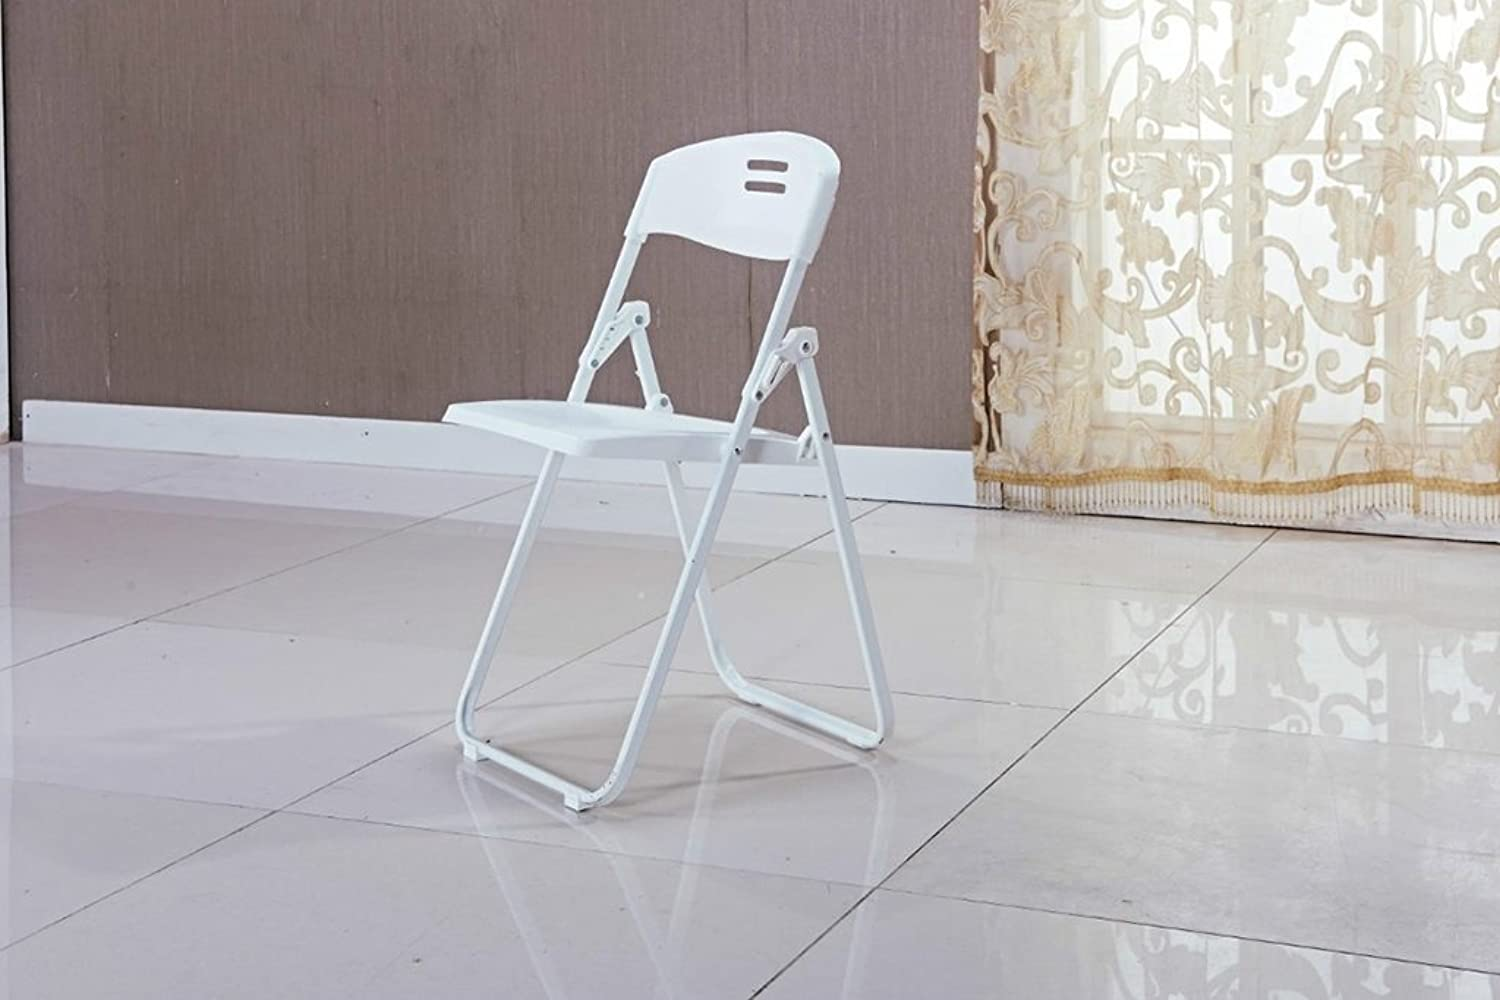 Folding Chair Folding Chairs Conference Chairs Folding Office Chairs Backrest Folding Chairs Household Student Computer Chairs (color   White)